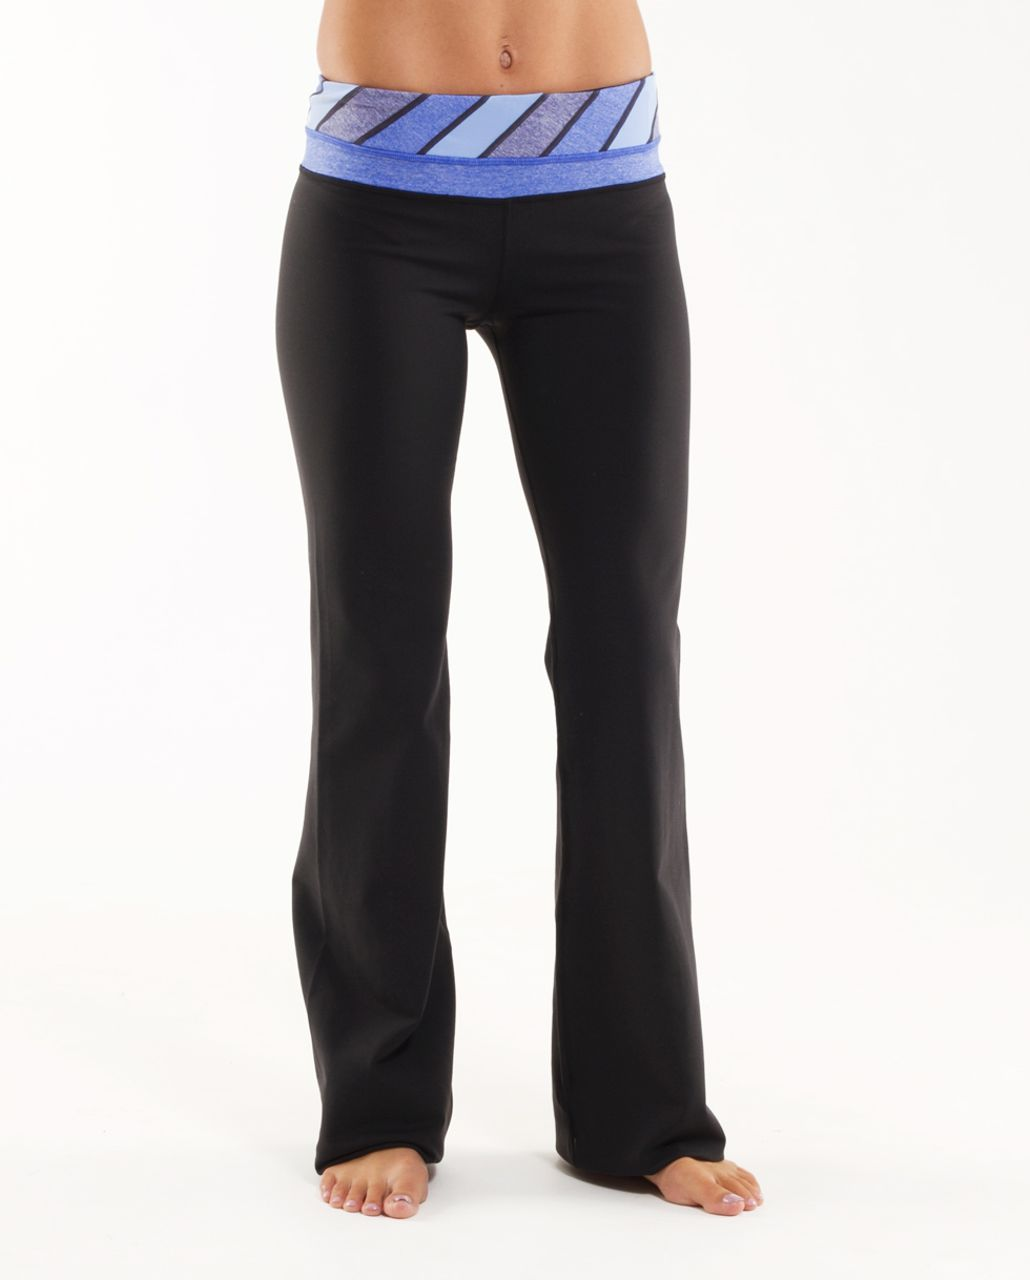 Lululemon Groove Pant (Regular) - Black /  Quilt 26 /  Heathered Rocksteady